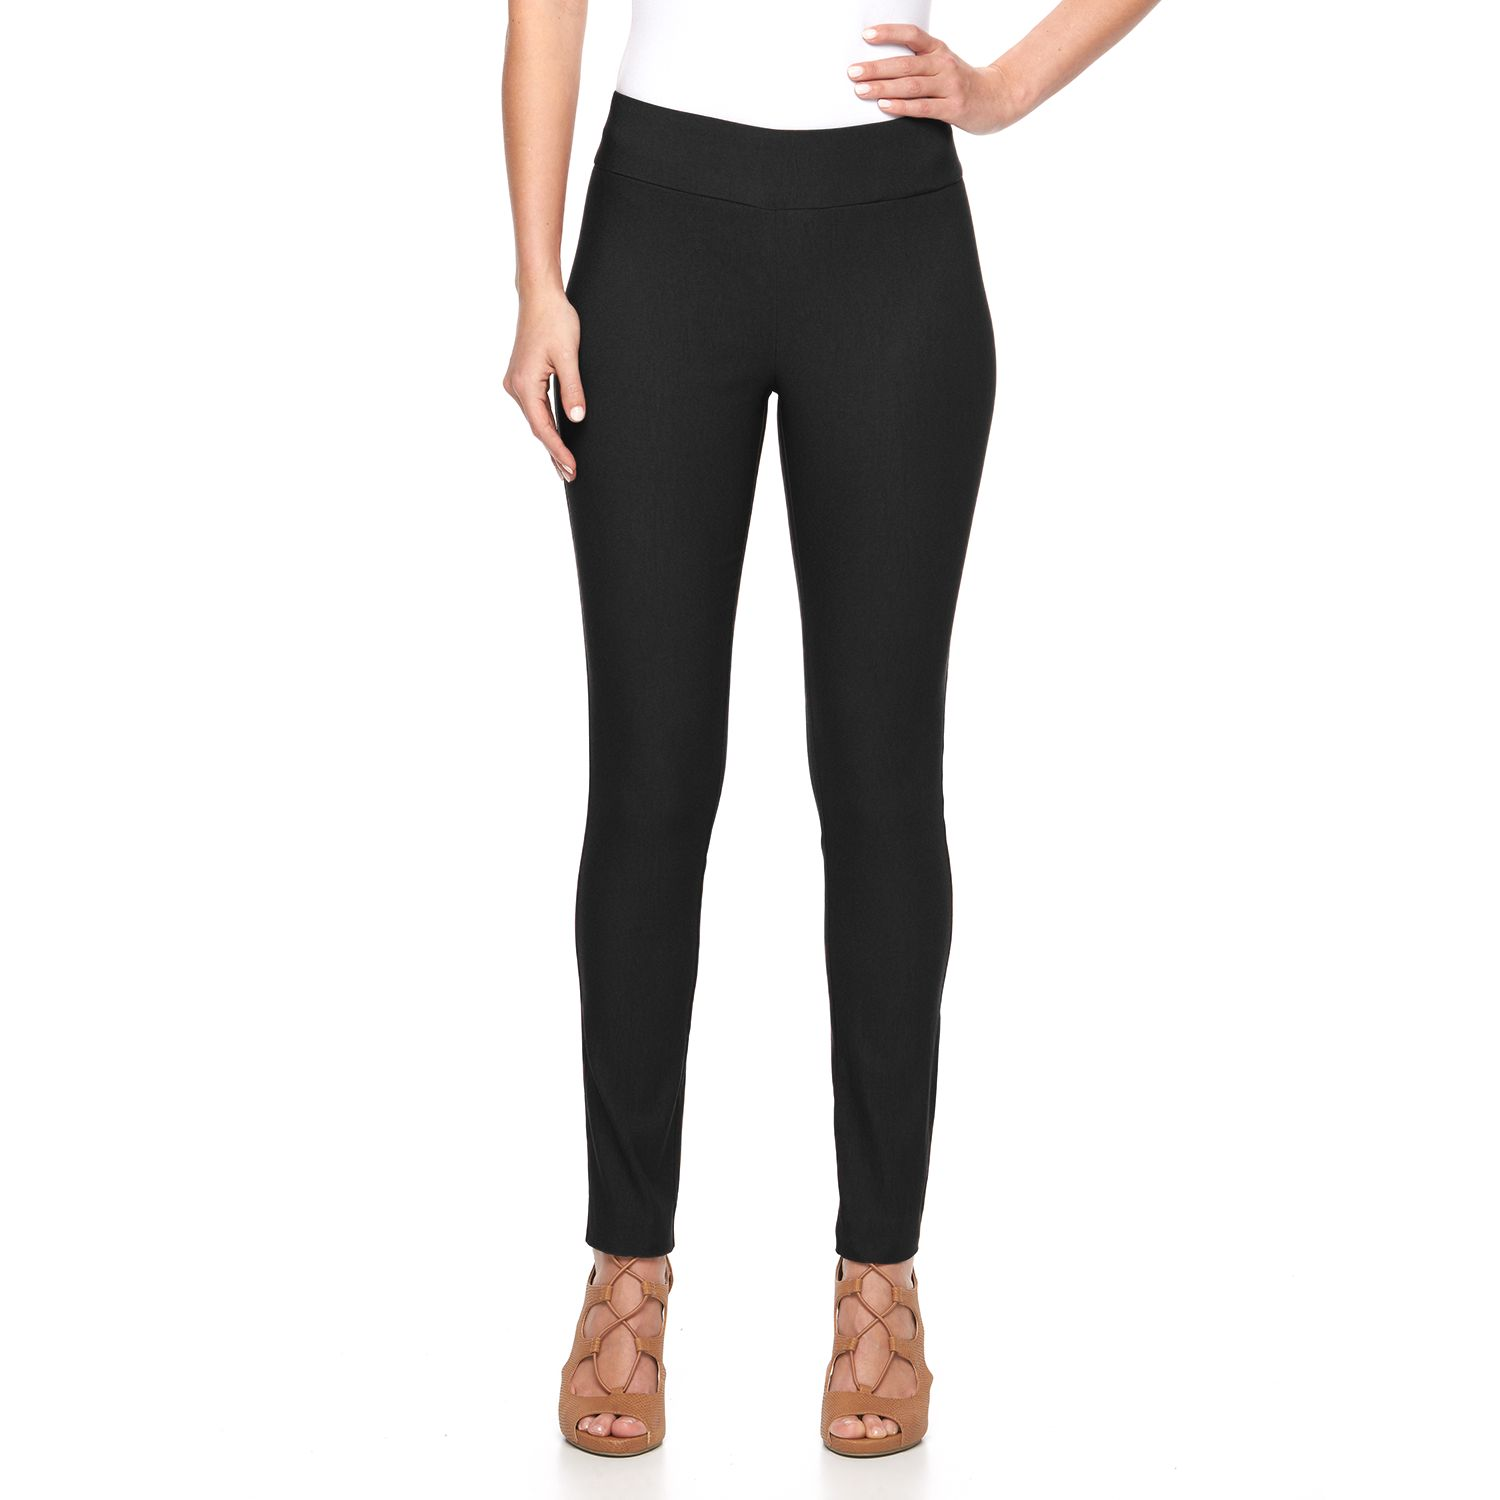 Black Skinny Dress Pants Women